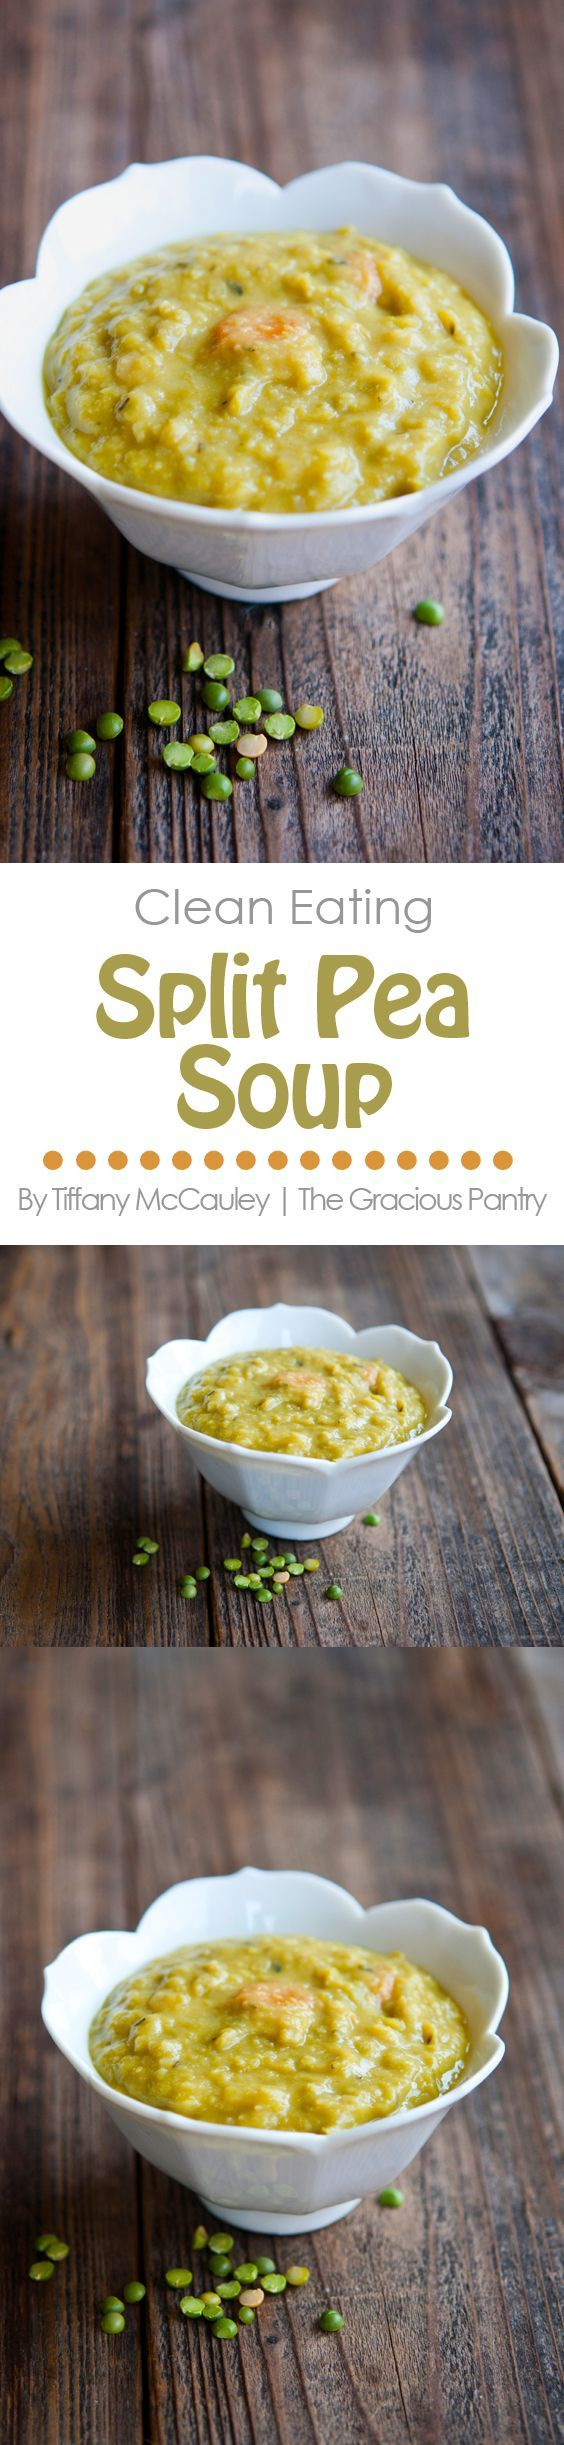 Clean Eating Recipes | Split Pea Soup Recipe | Soup Recipes | Healthy Soup Recipes